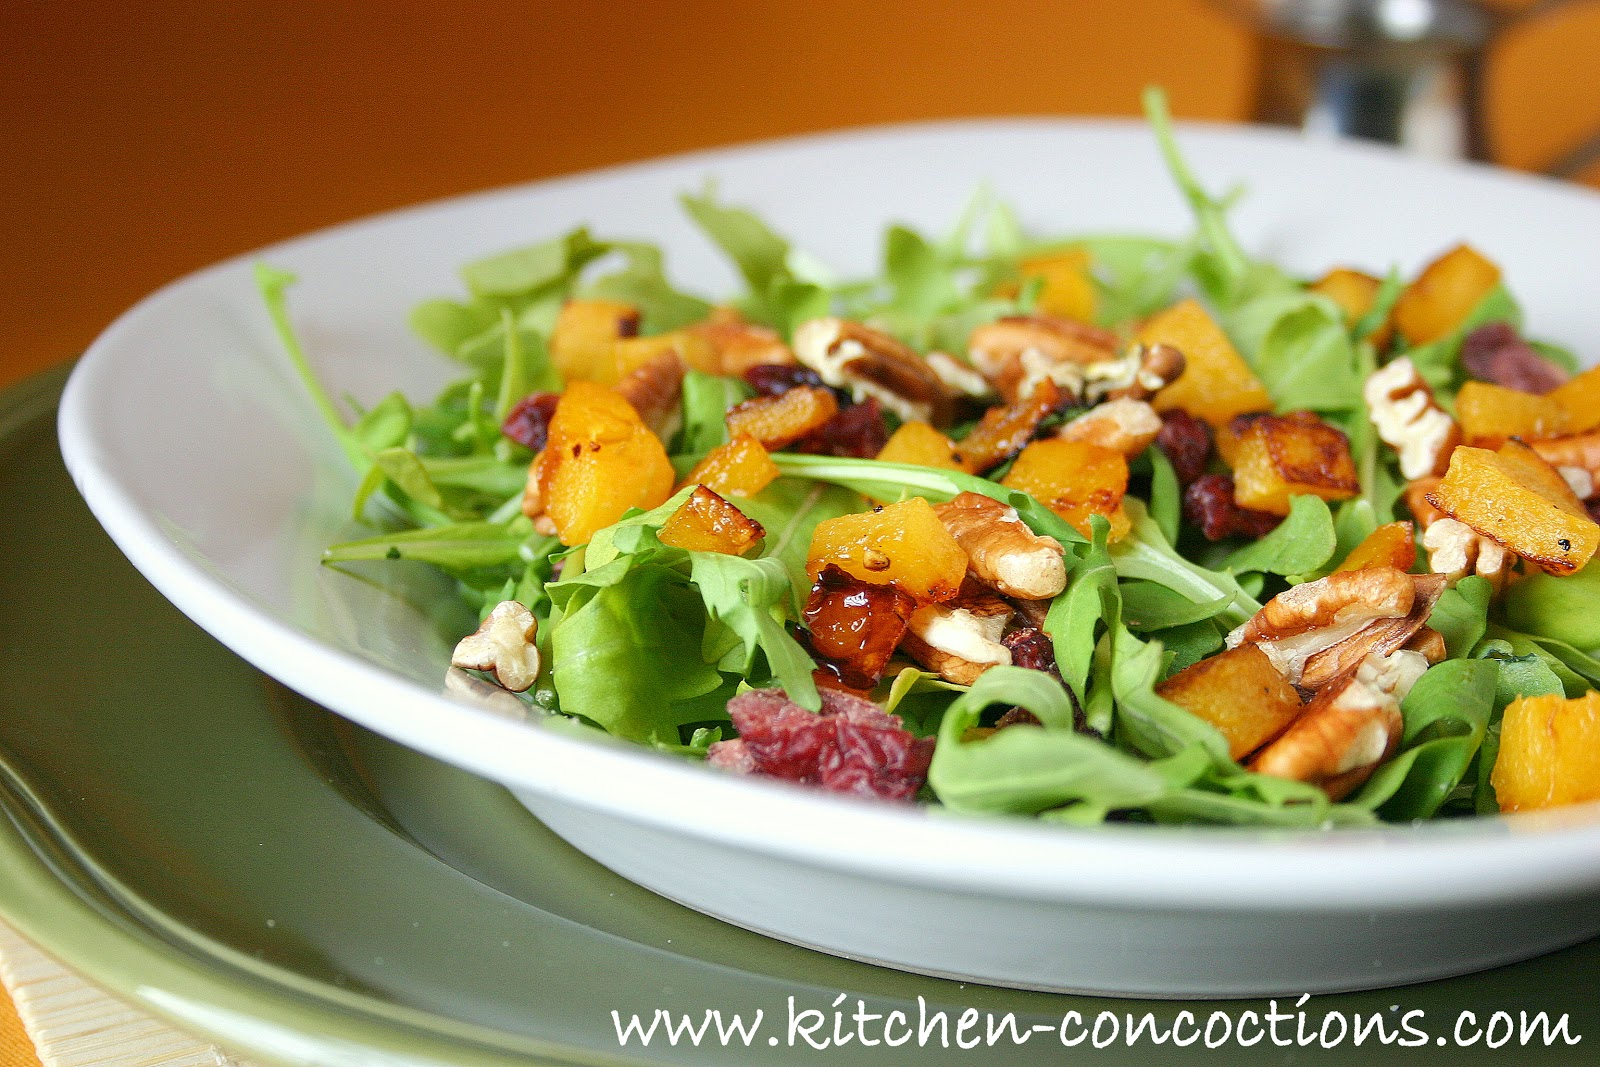 ... : Roasted Butternut Squash Salad with Warm Cider Vinaigrette